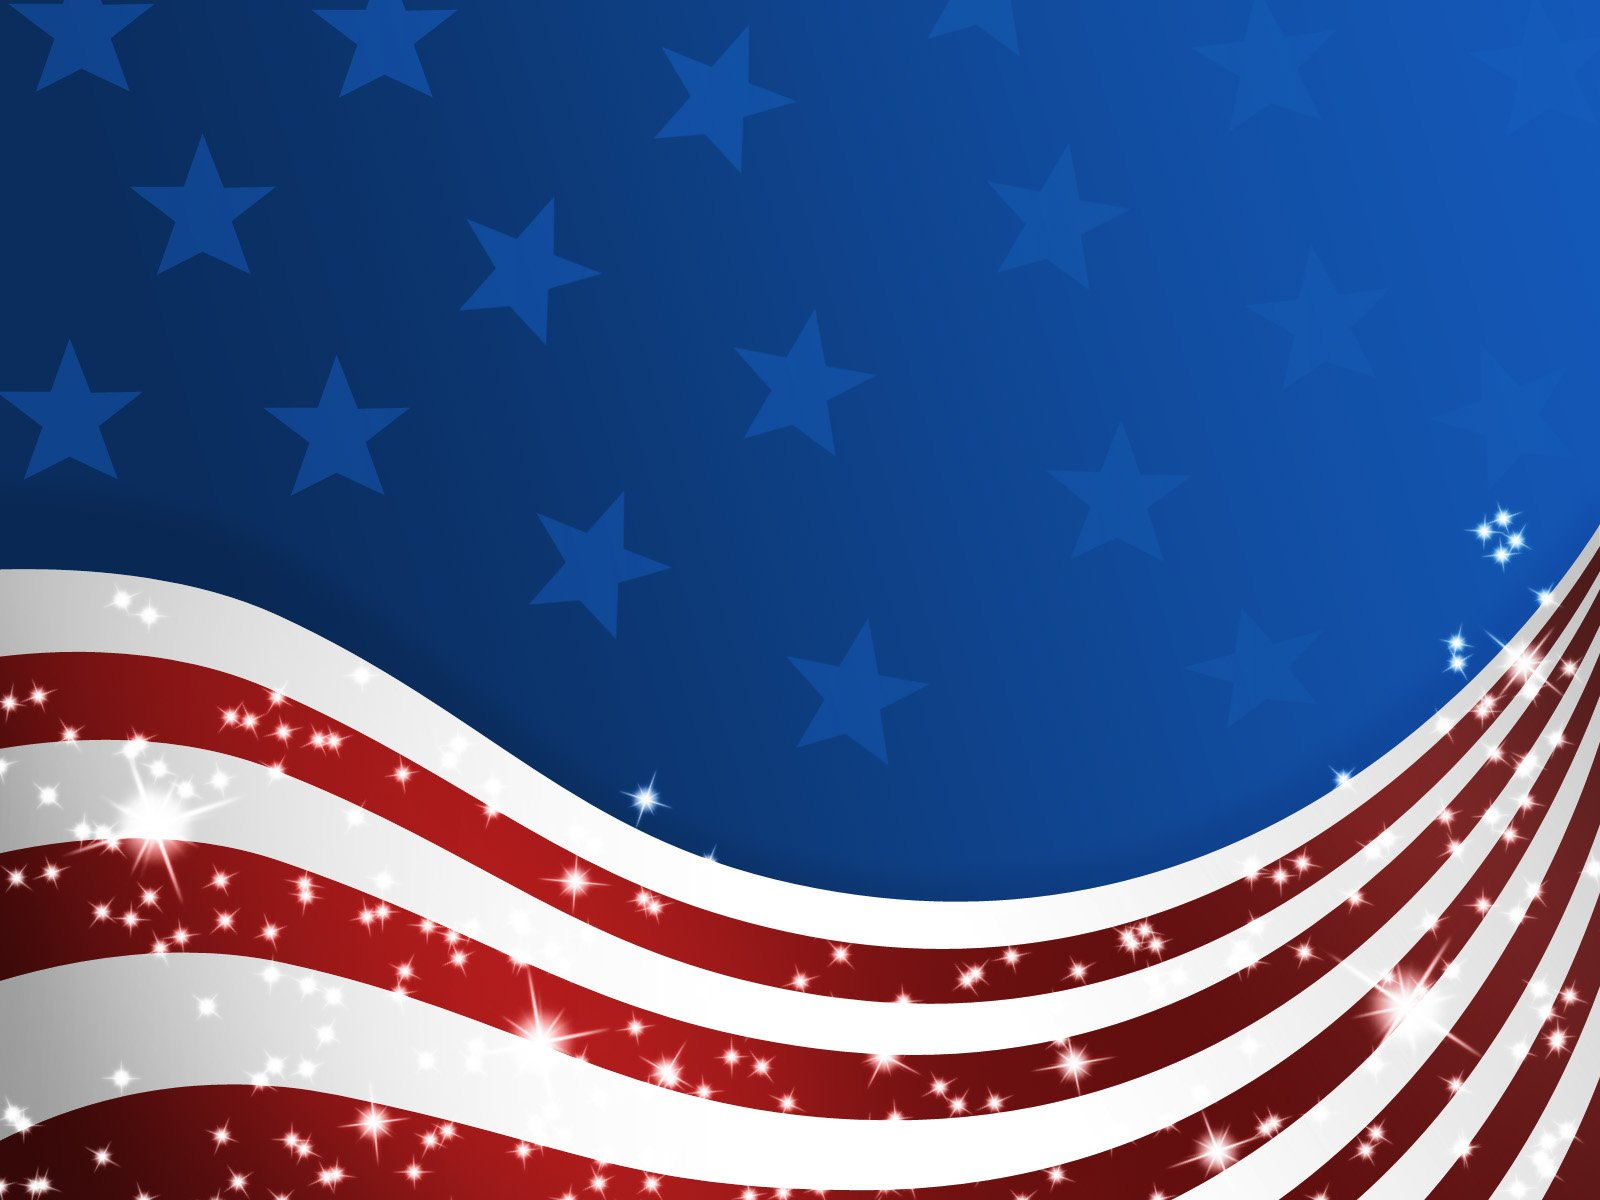 Free patriotic backgrounds wallpapersafari patriotic background images cliparts voltagebd